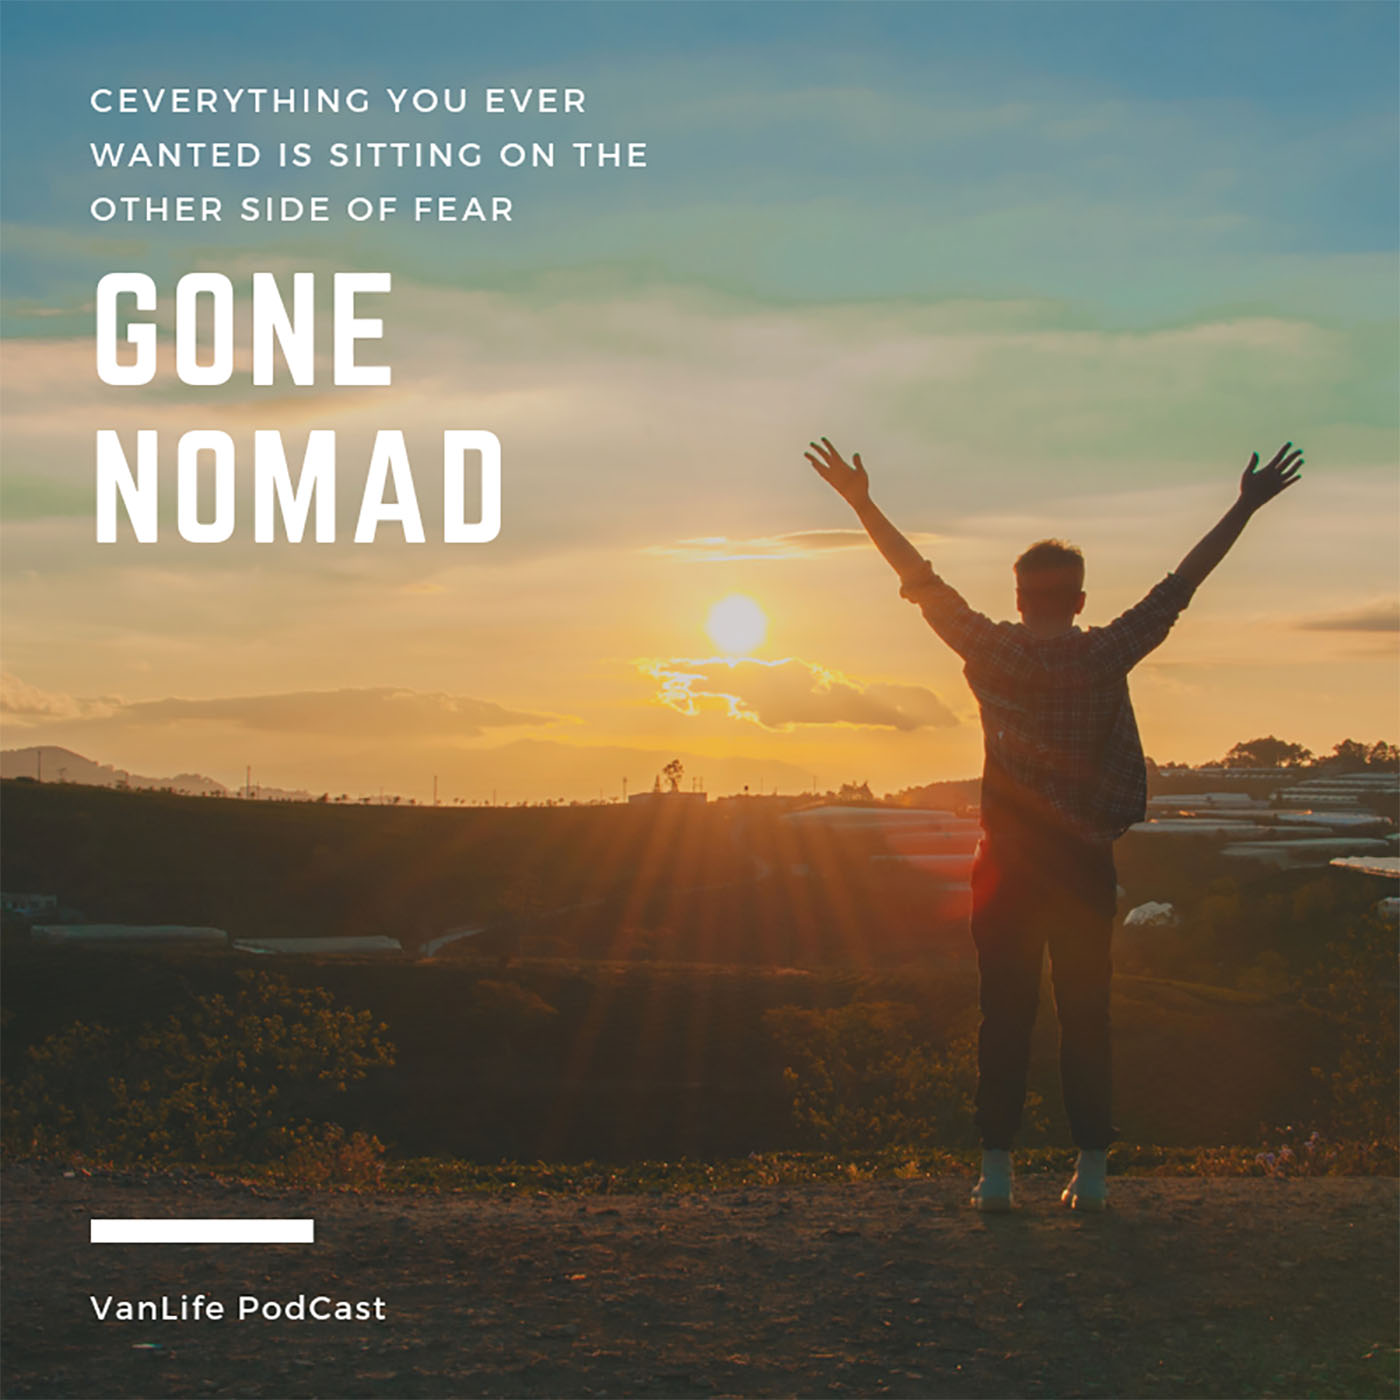 Gone Nomad - VanLife Podcast